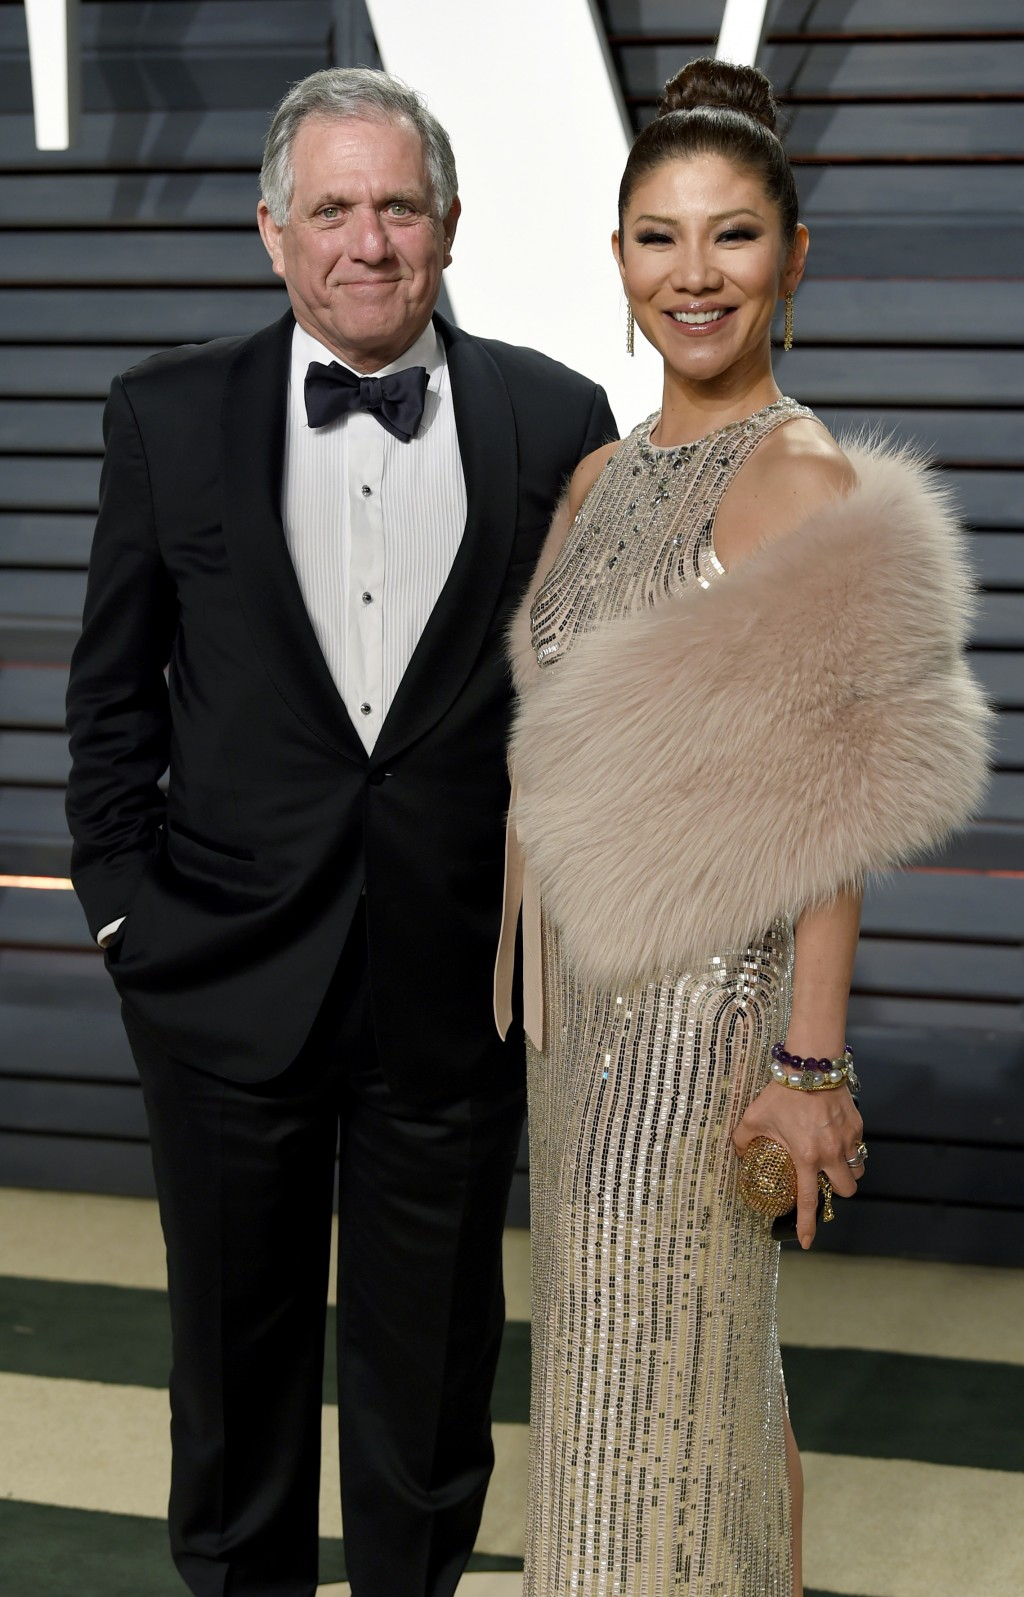 FILE - In this Feb. 26, 2017 file photo, Les Moonves, left, and Julie Chen arrive at the Vanity Fair Oscar Party in Beverly Hills, Calif. Chen was abs